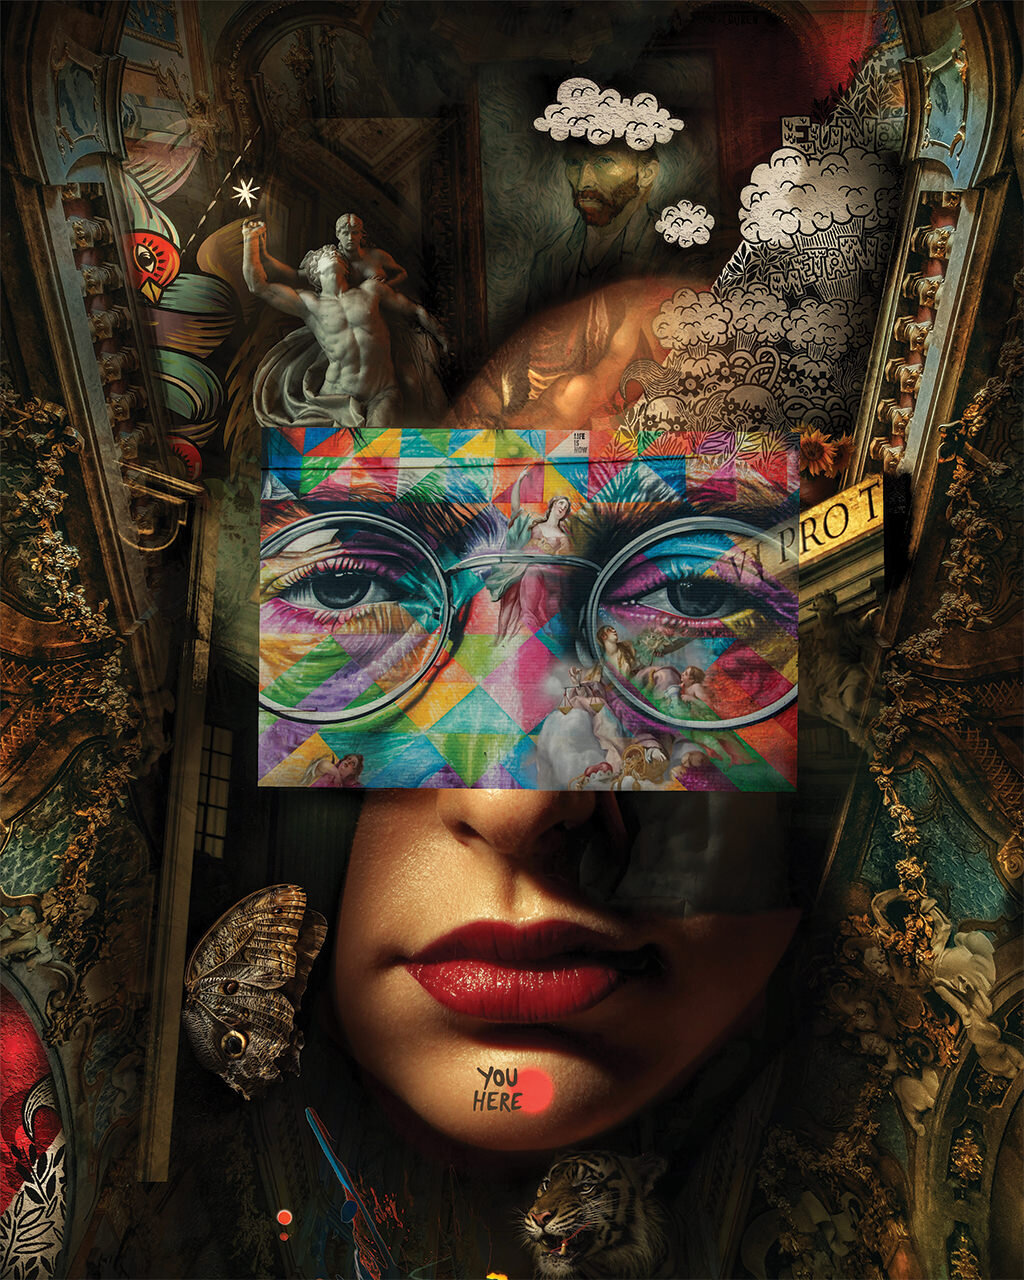 Our Mission - Every issue, every page, every word of this magazine is meant to inspire you. To pull you in and refuse to let go until you've read it cover to cover. A magazine with lush photos that tell a story with a unique look. This is the definition of perfect, artistically inspired content!Through the sections, you'll find designers, artists, exotics destinations, and much, much more.As my love affair with art and creativity continues to expand, I hope you'll enjoy the ride with me.The first issue of Timeless Magazine is now in your hands. Absorb the beauty of the present moment!Learn More